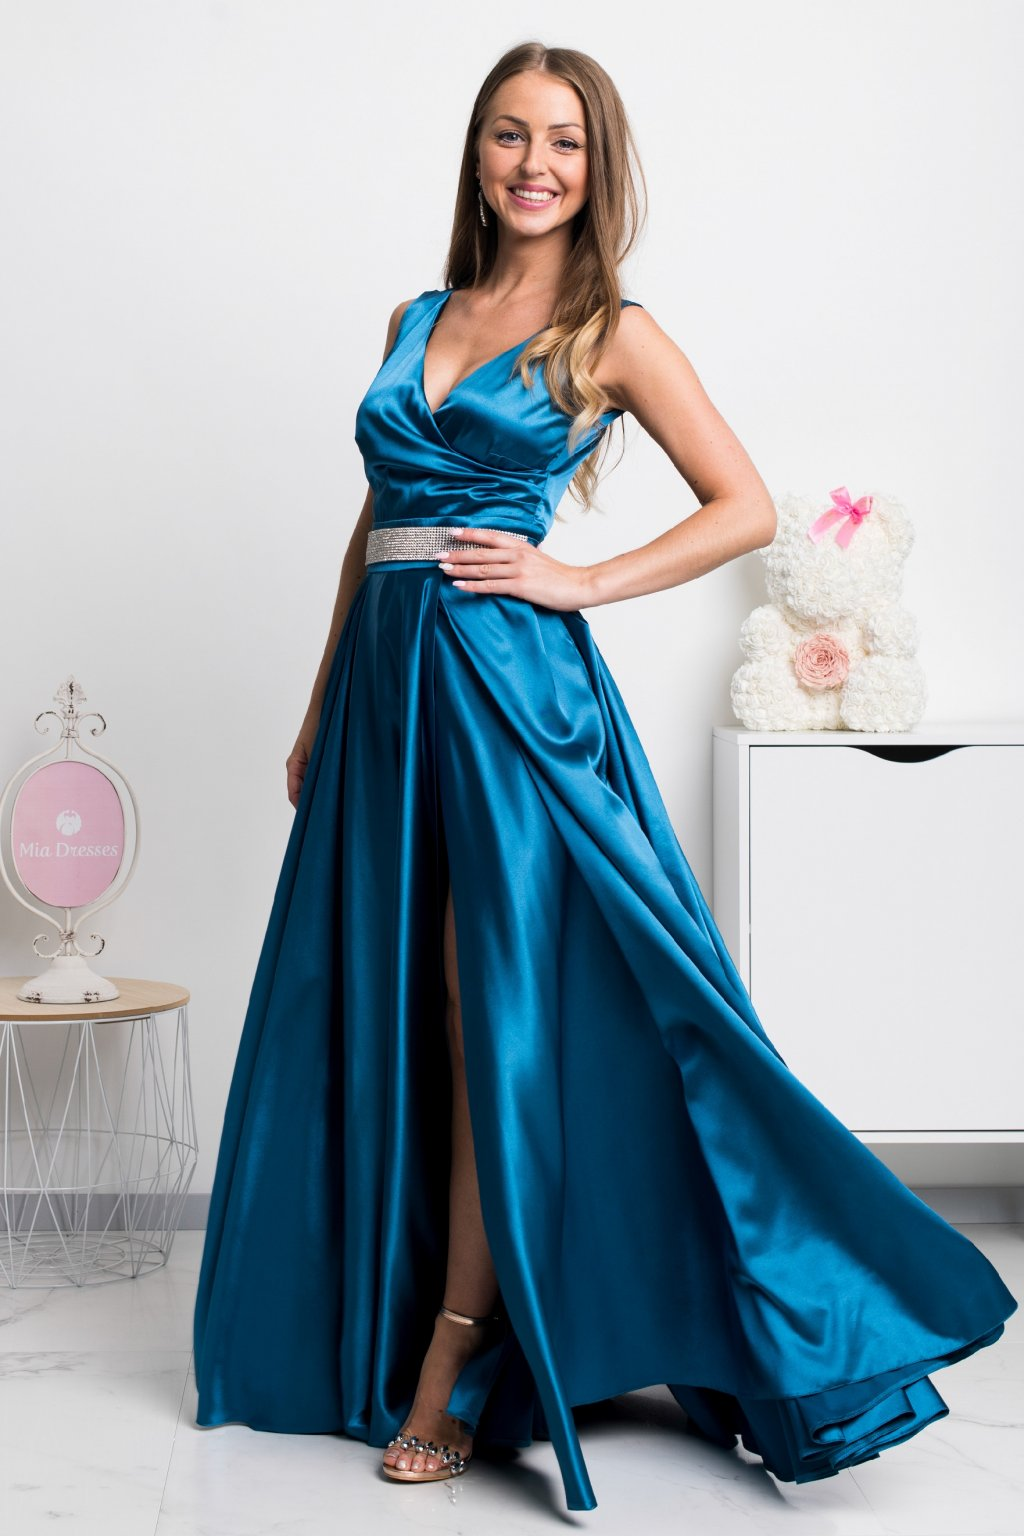 Teal formal dress with strass belt